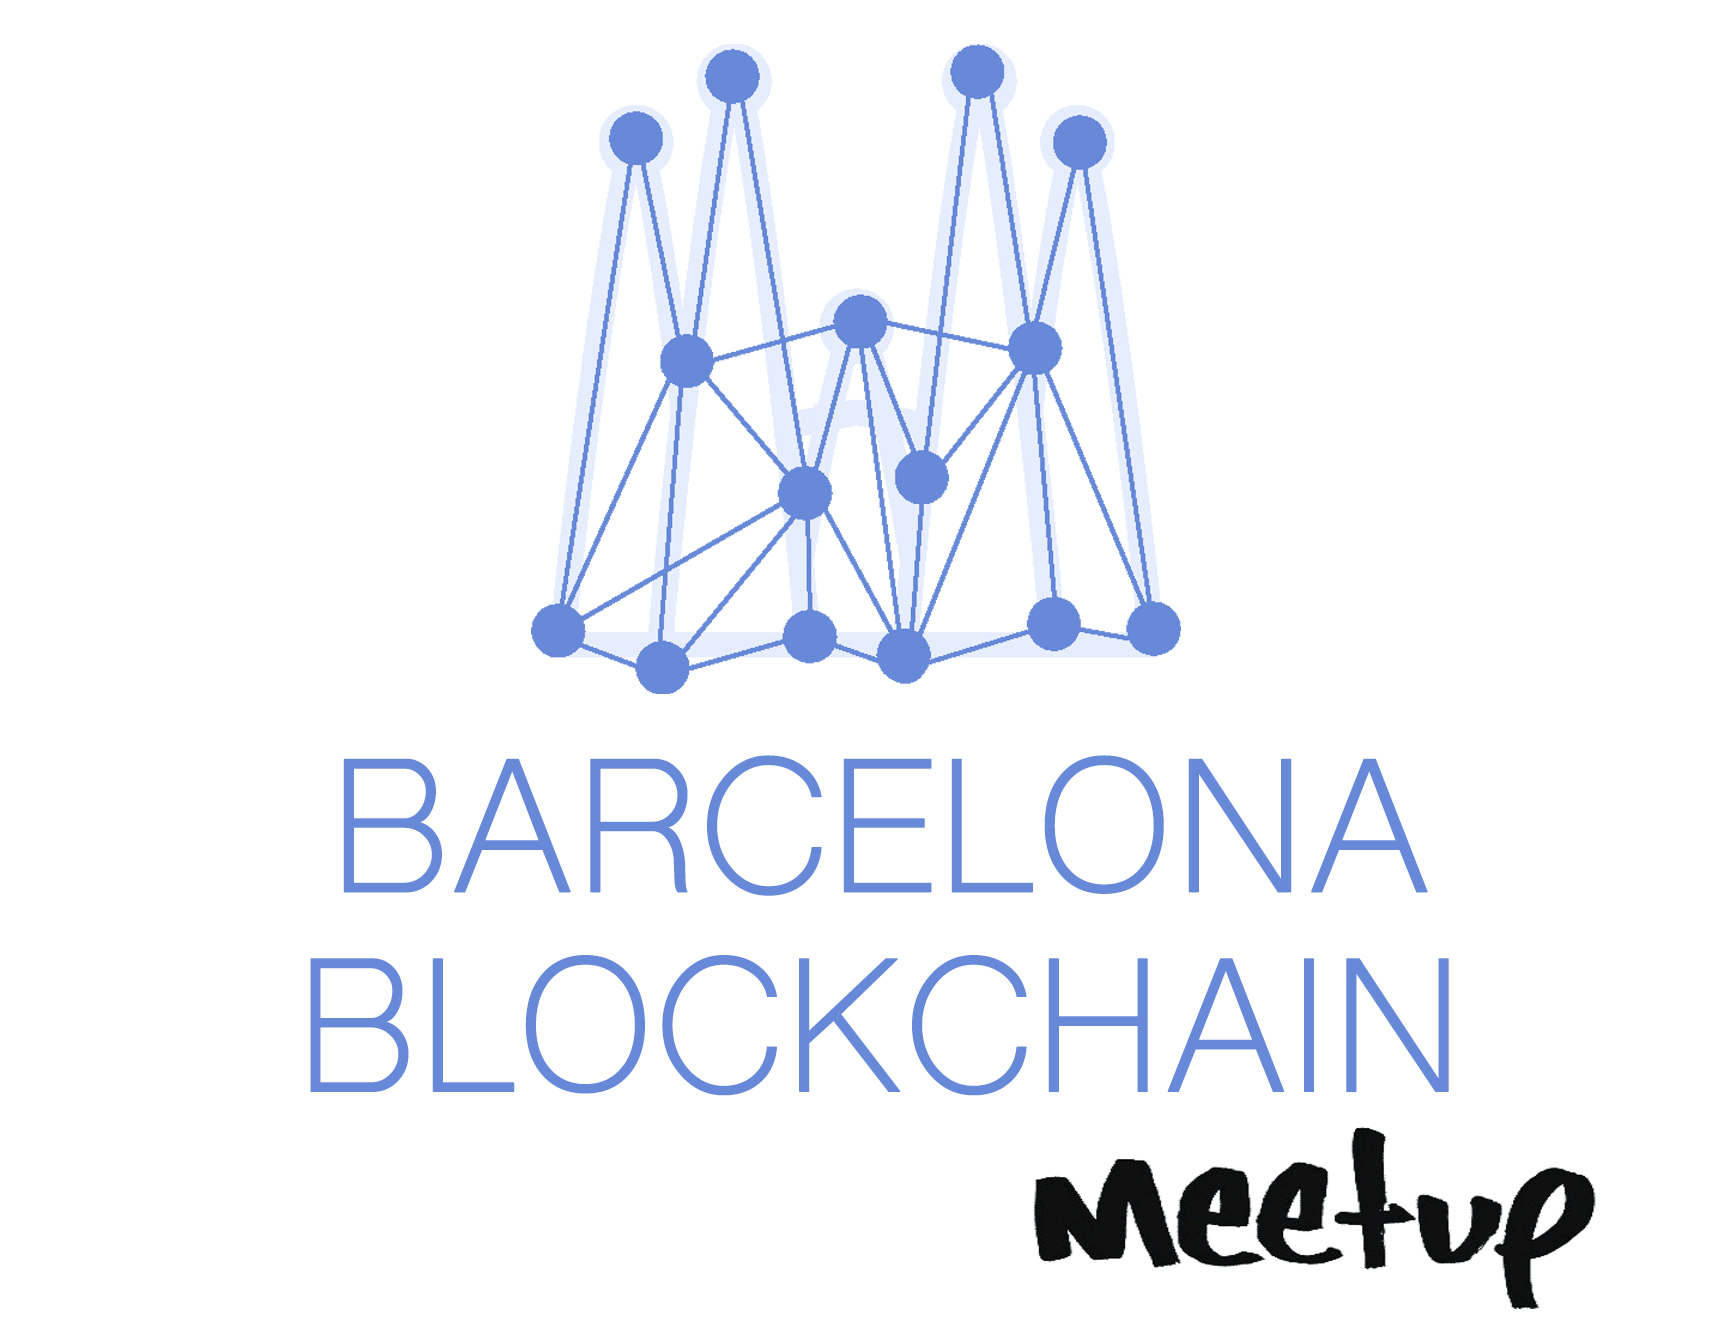 Barcelona Blockchain Summer Meetup